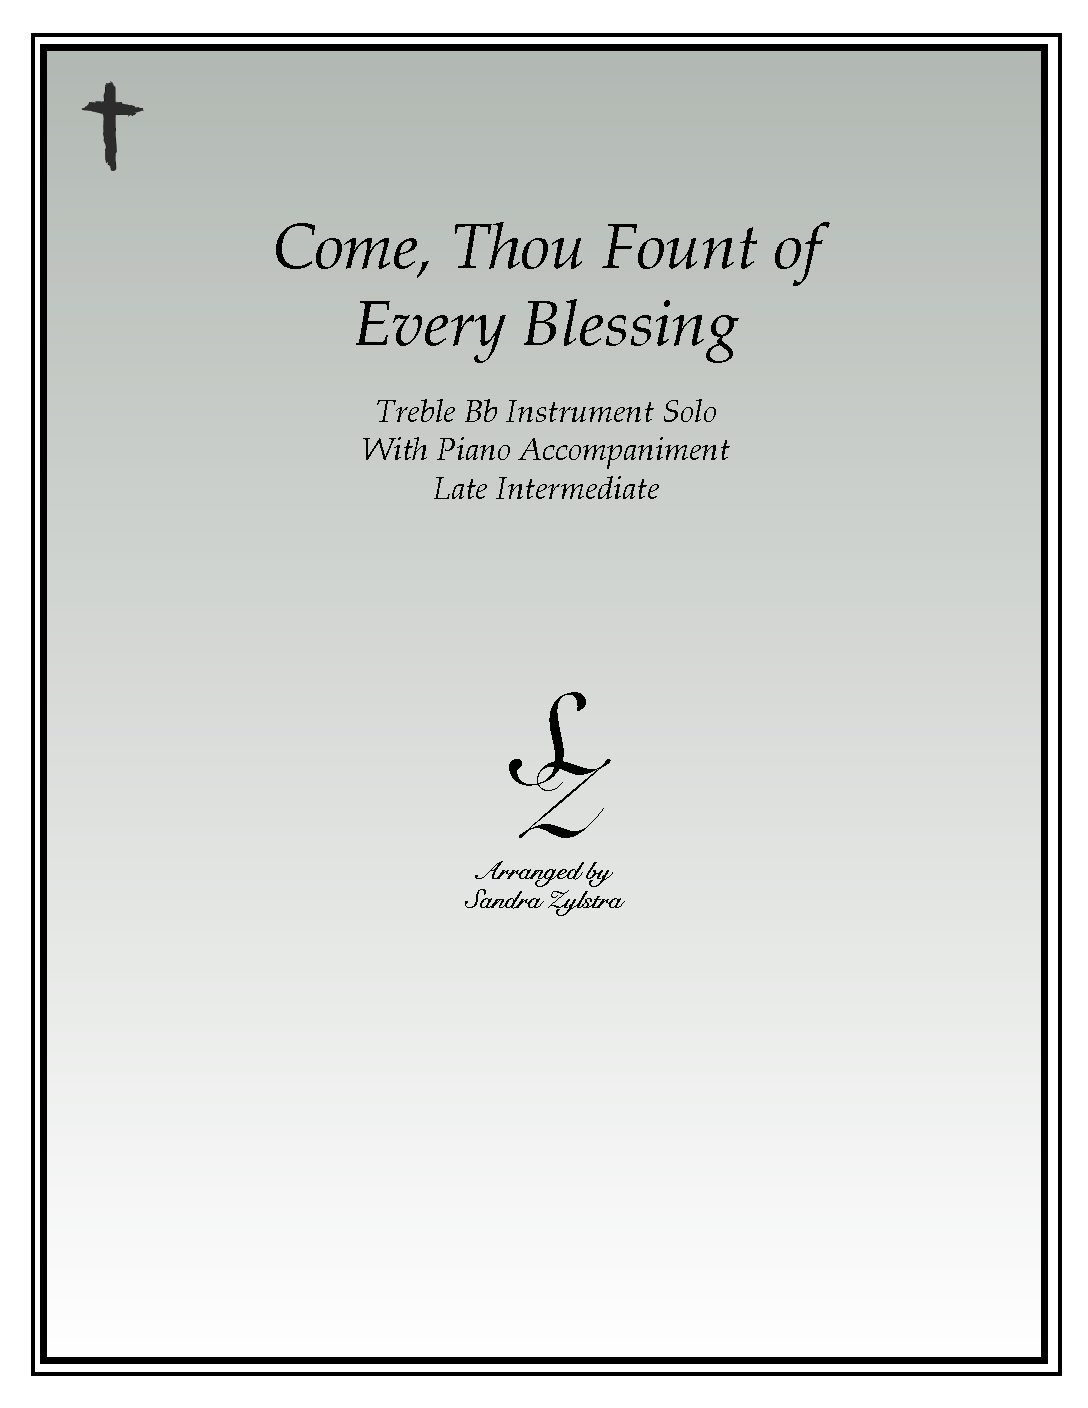 Come, Thou Fount Of Every Blessing -Treble Bb Instrument Solo